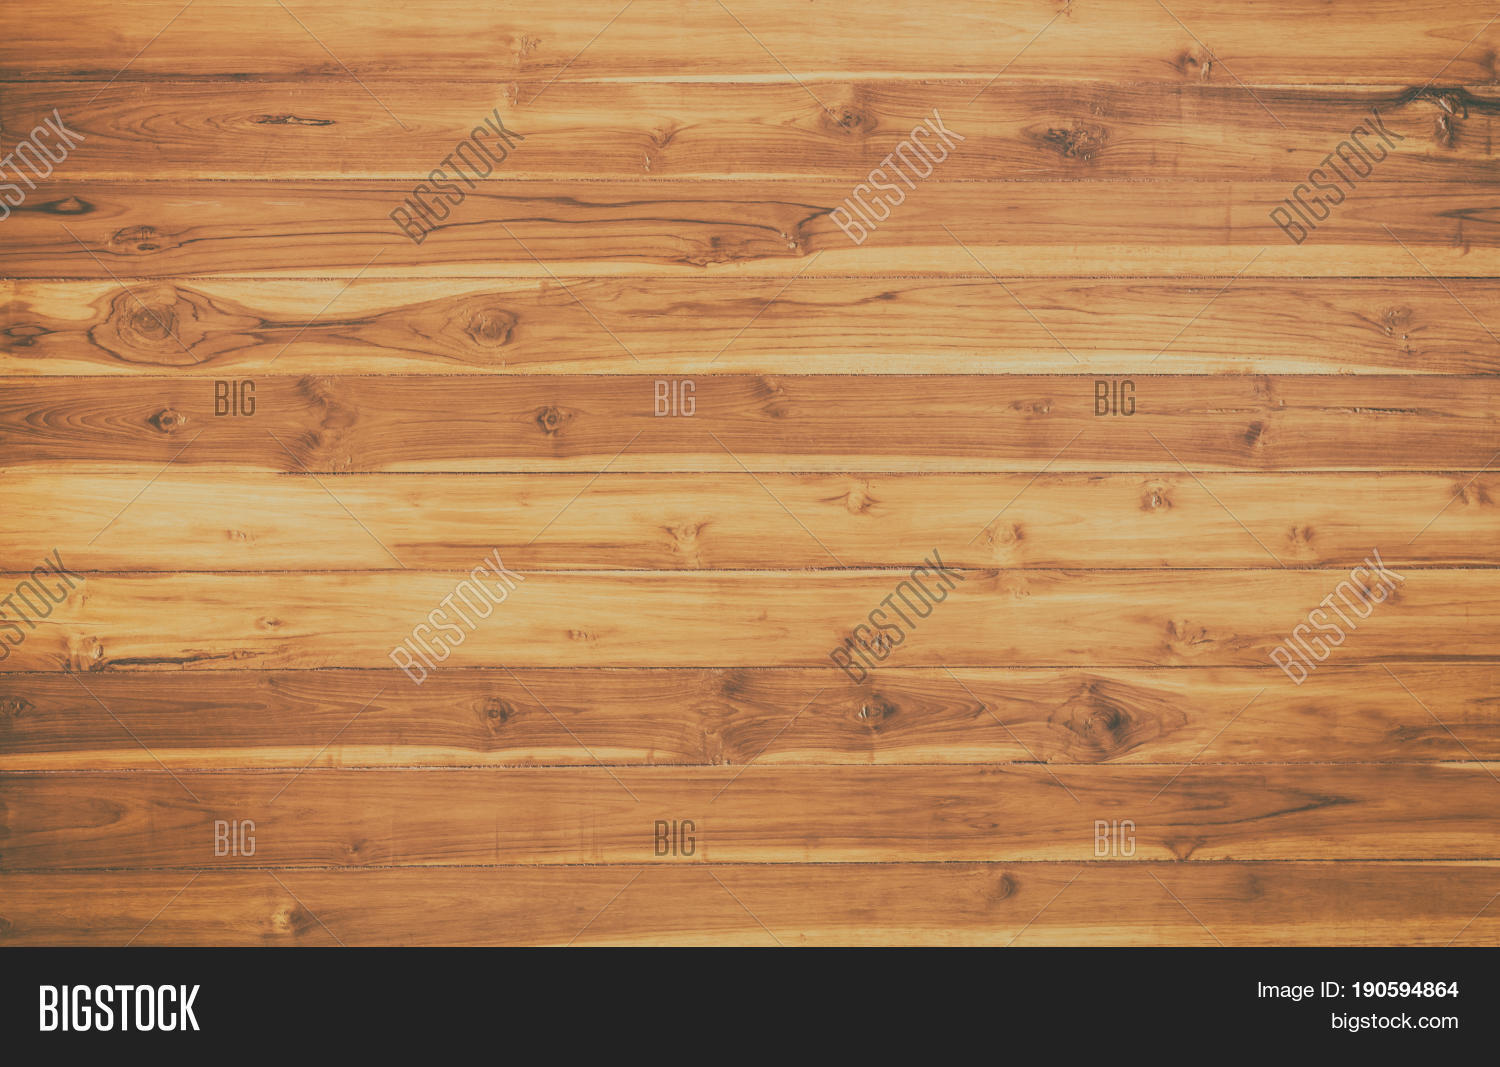 Wooden Table Surface ~ Abstract surface wood table texture image photo bigstock